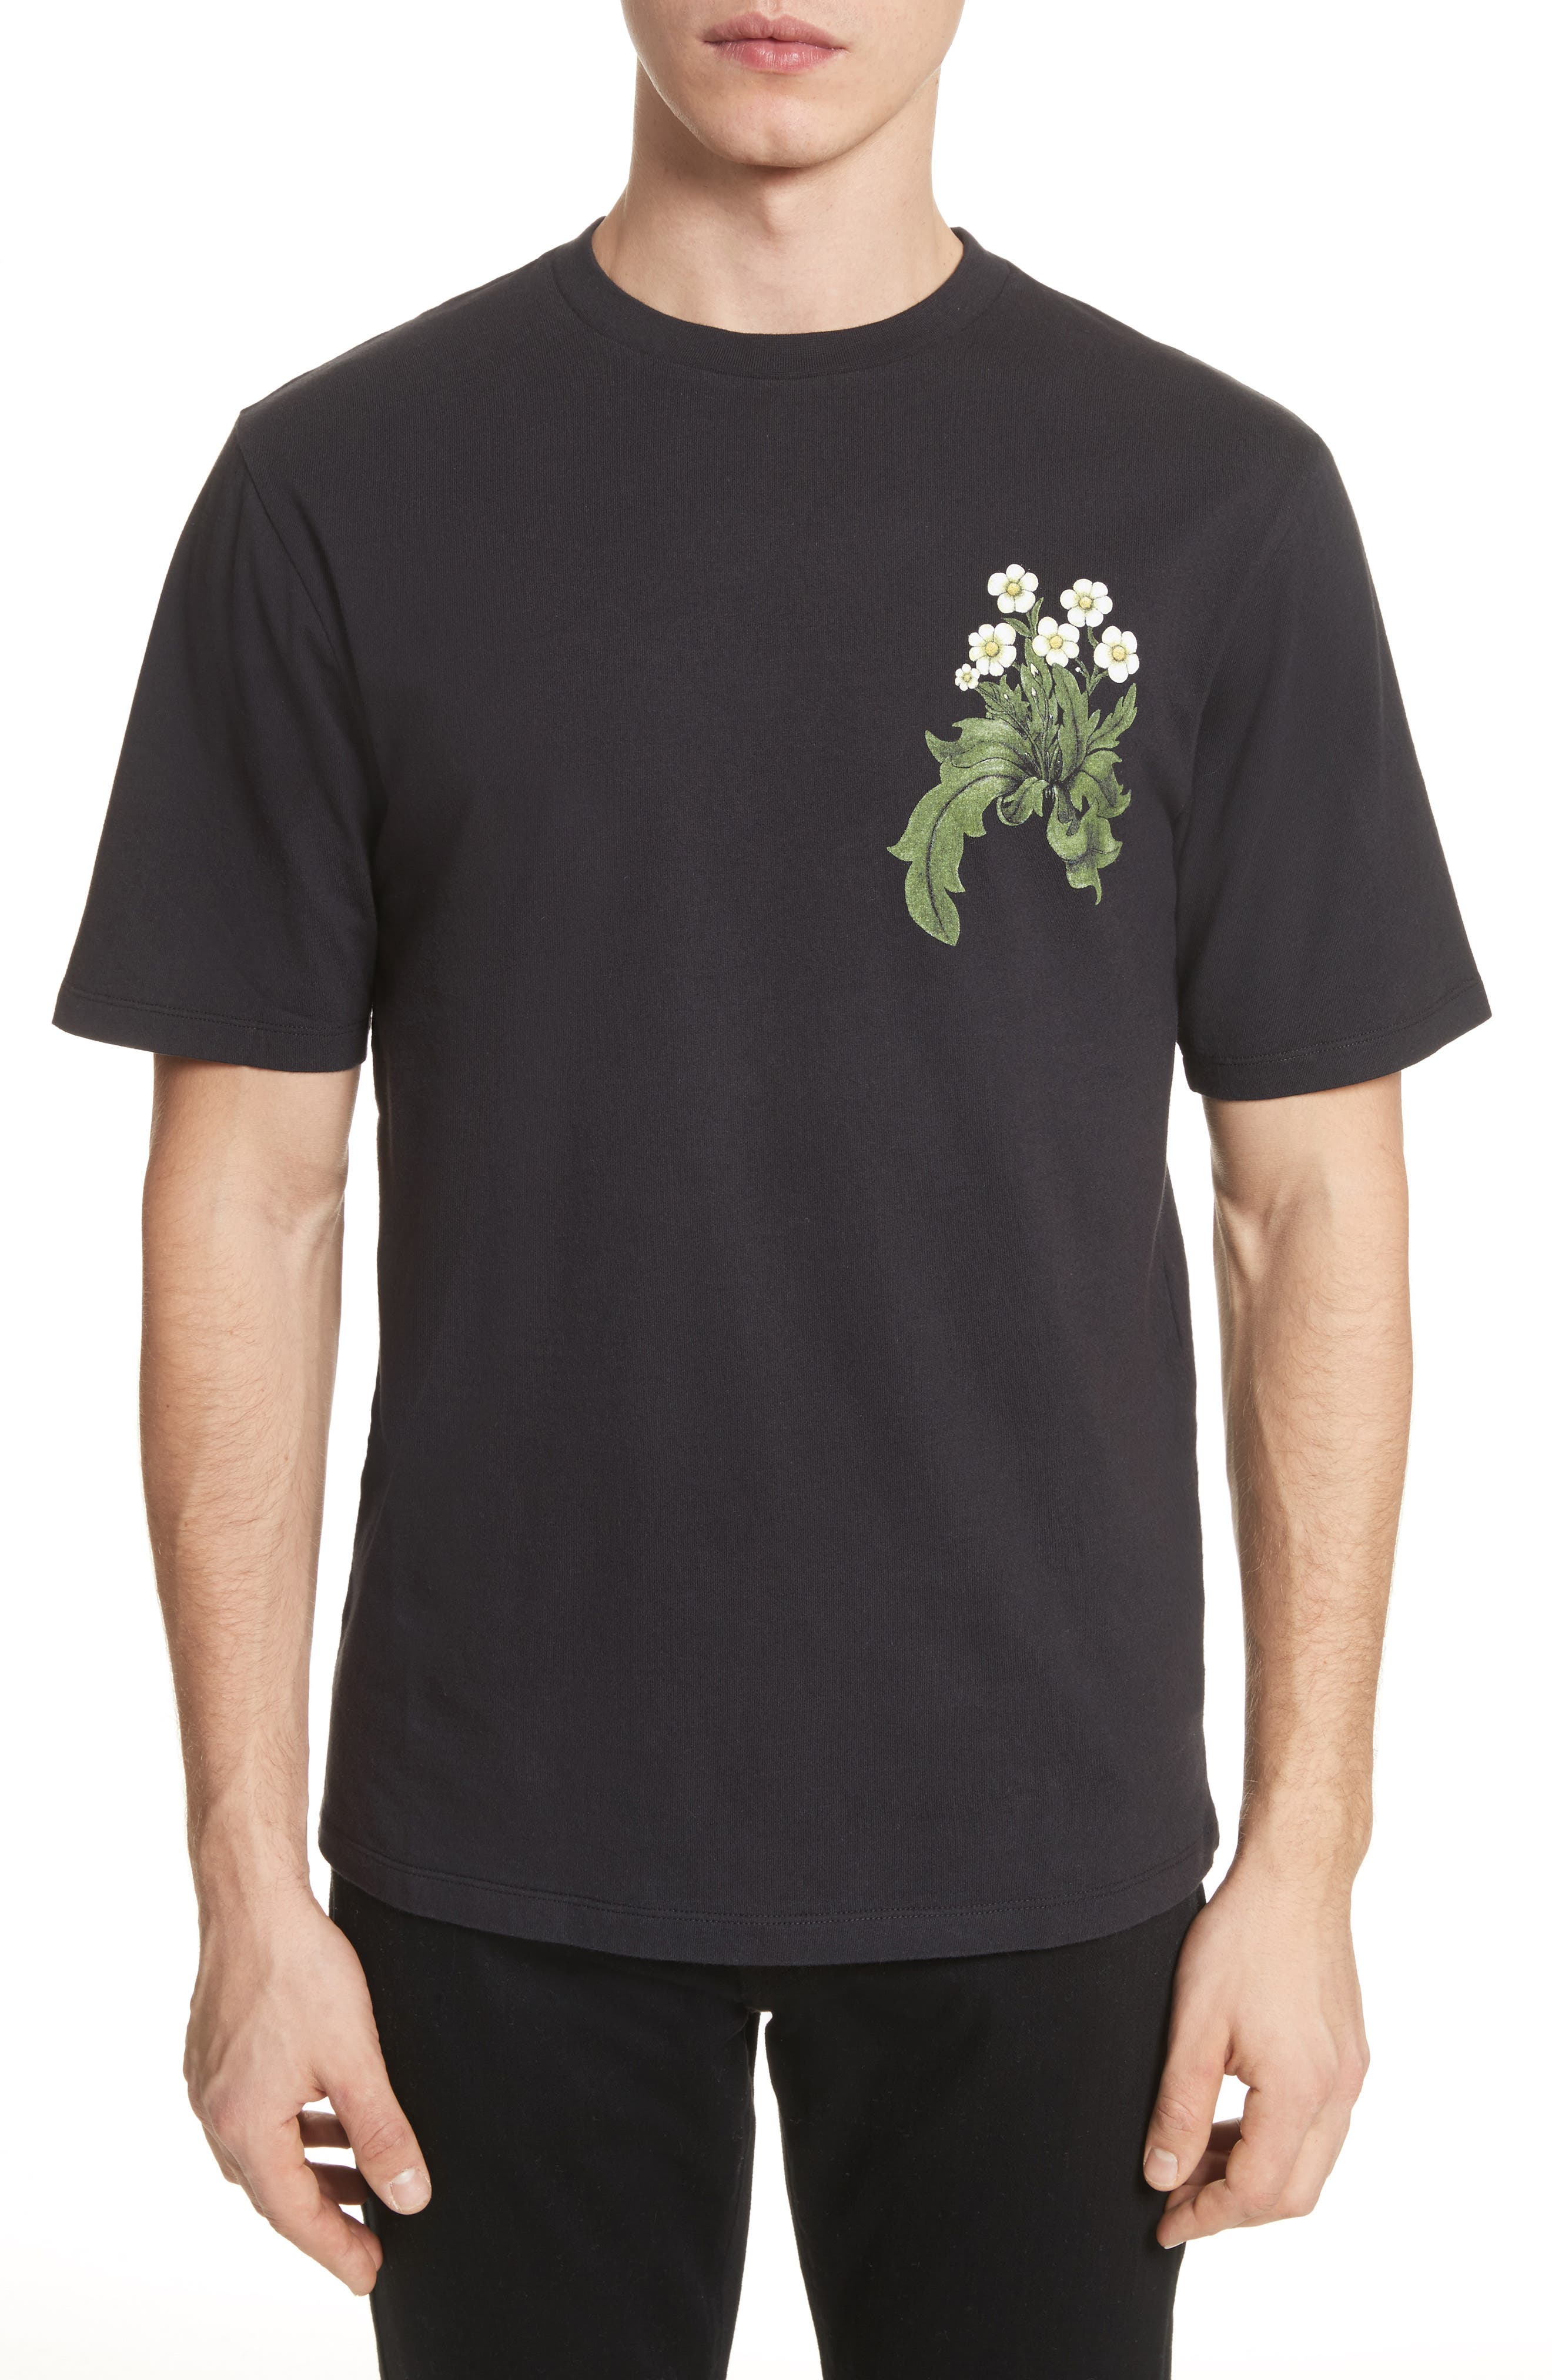 Loewe & Co. Graphic T-Shirt,                         Main,                         color, 001